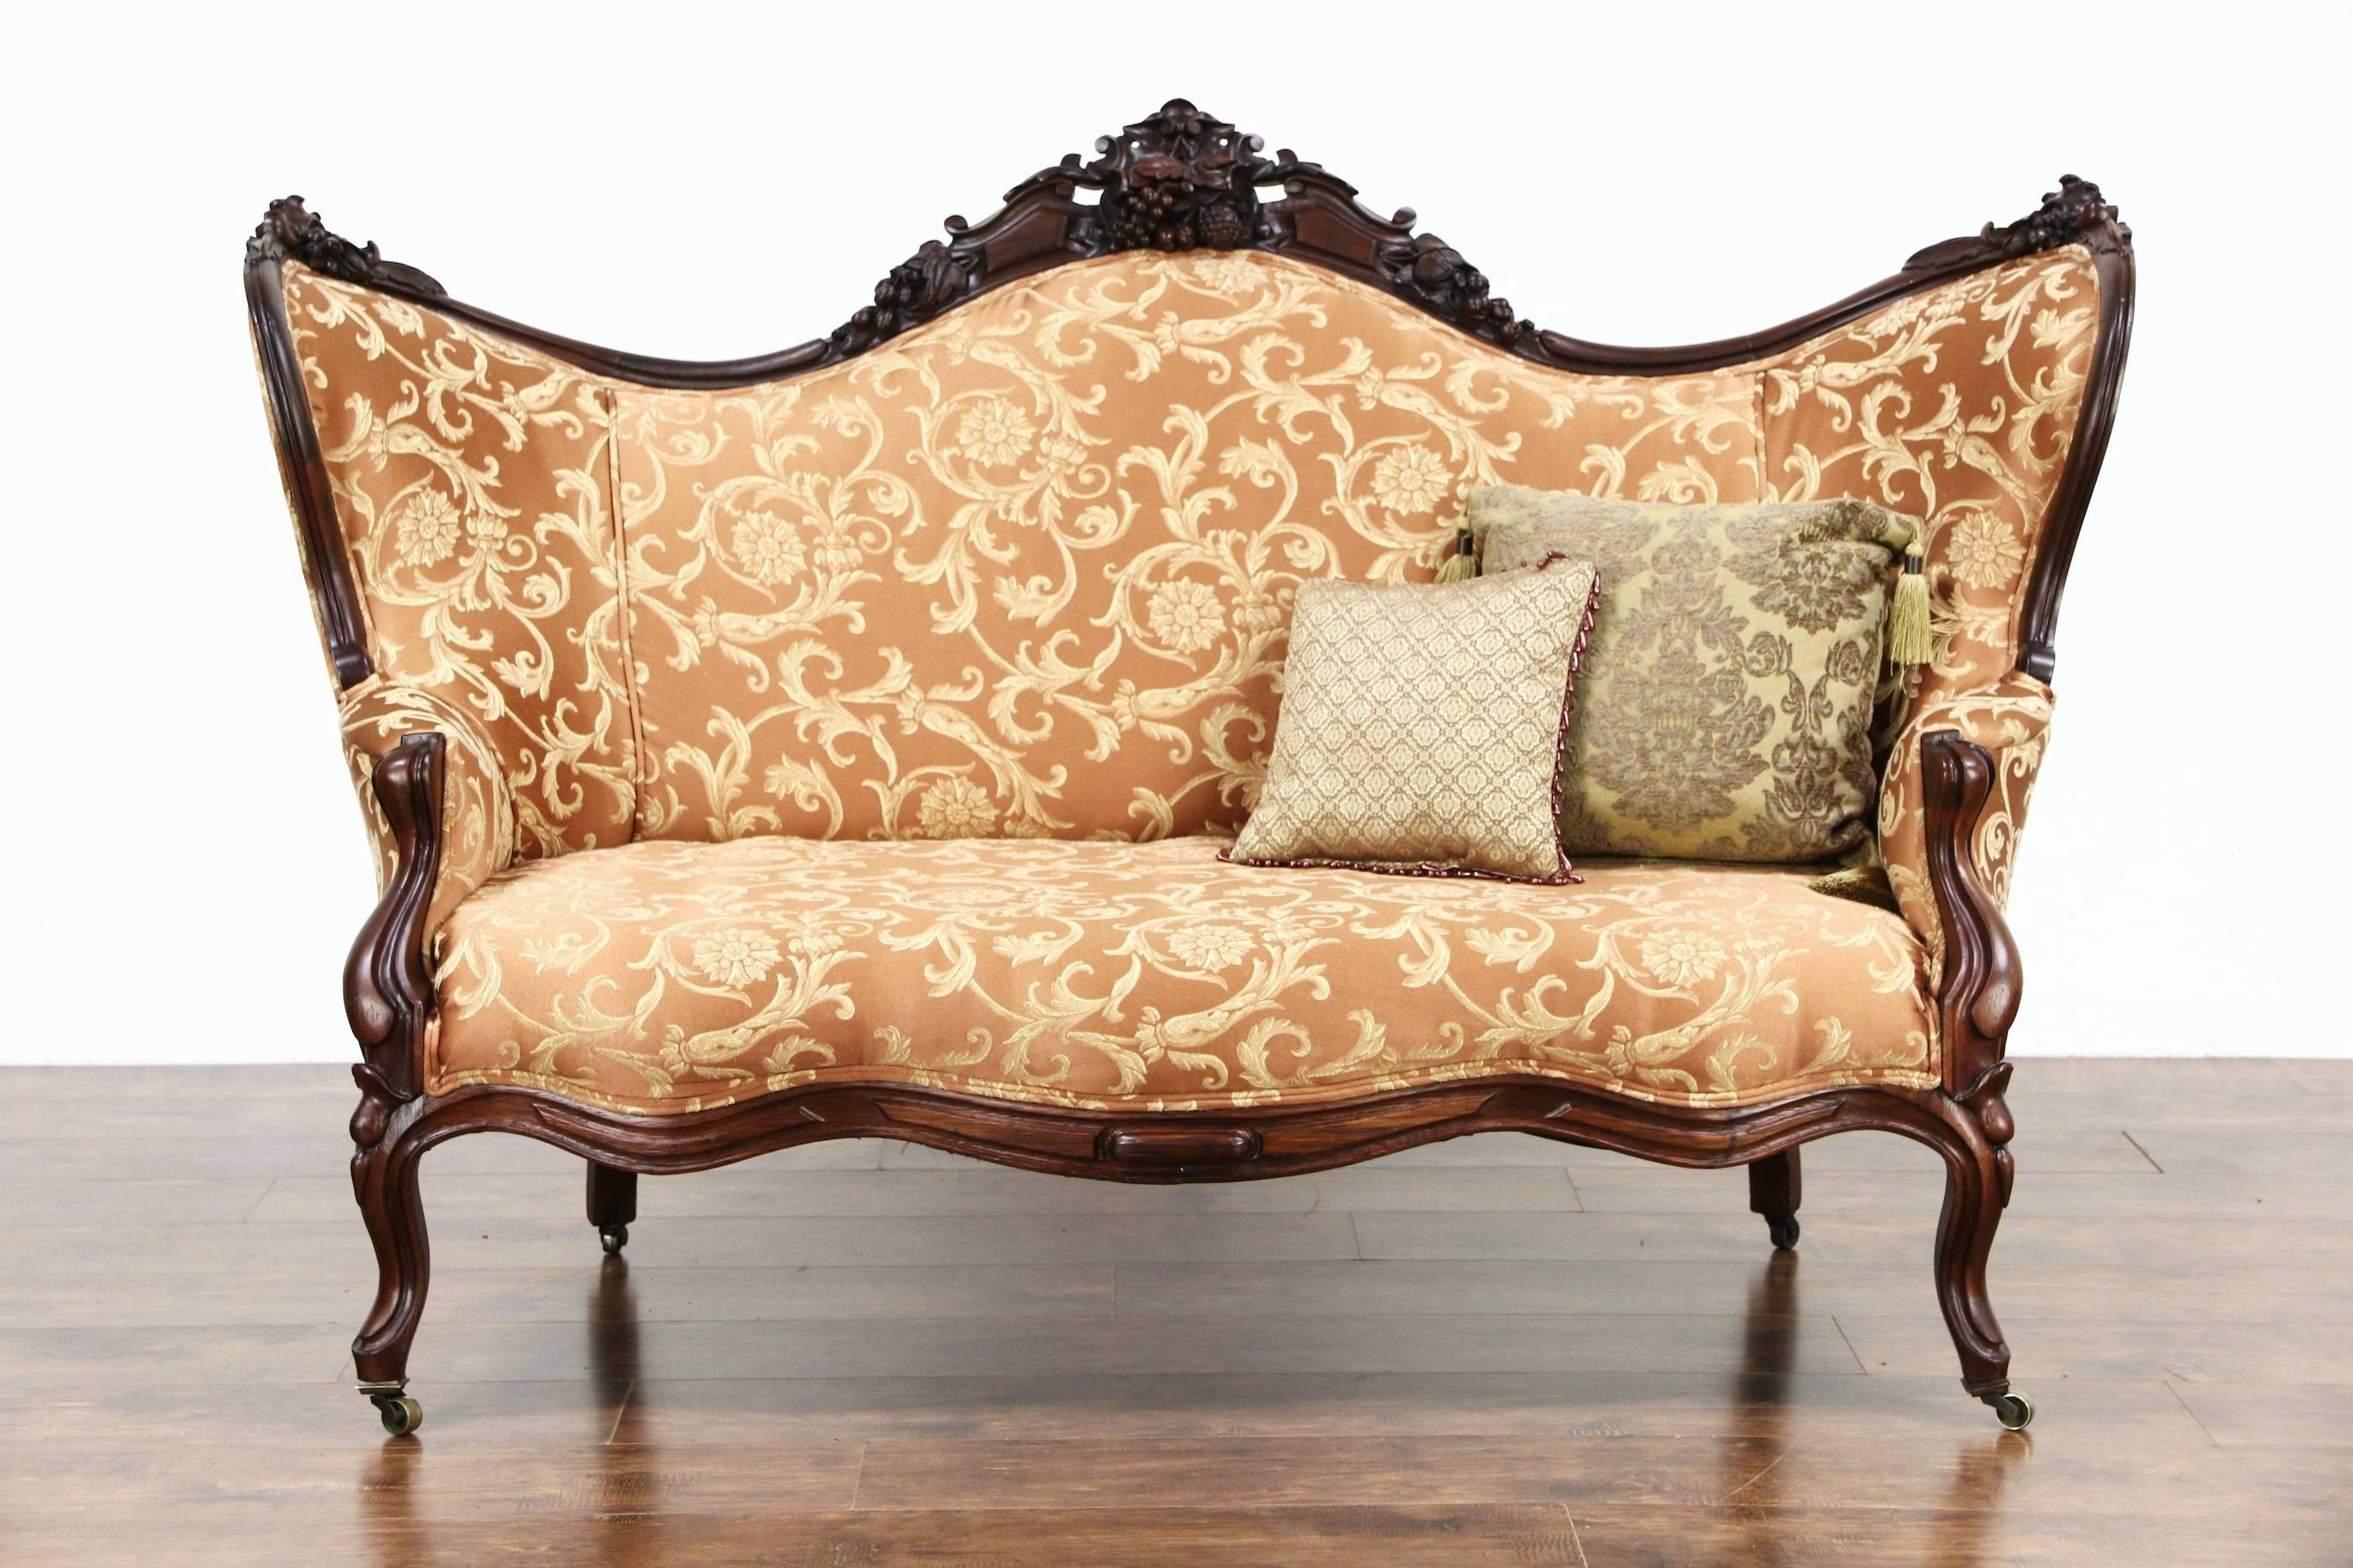 Sold - Victorian 1860 Antique Carved Grape & Fruit Motif Rosewood throughout Antique Sofa Chairs (Image 24 of 30)